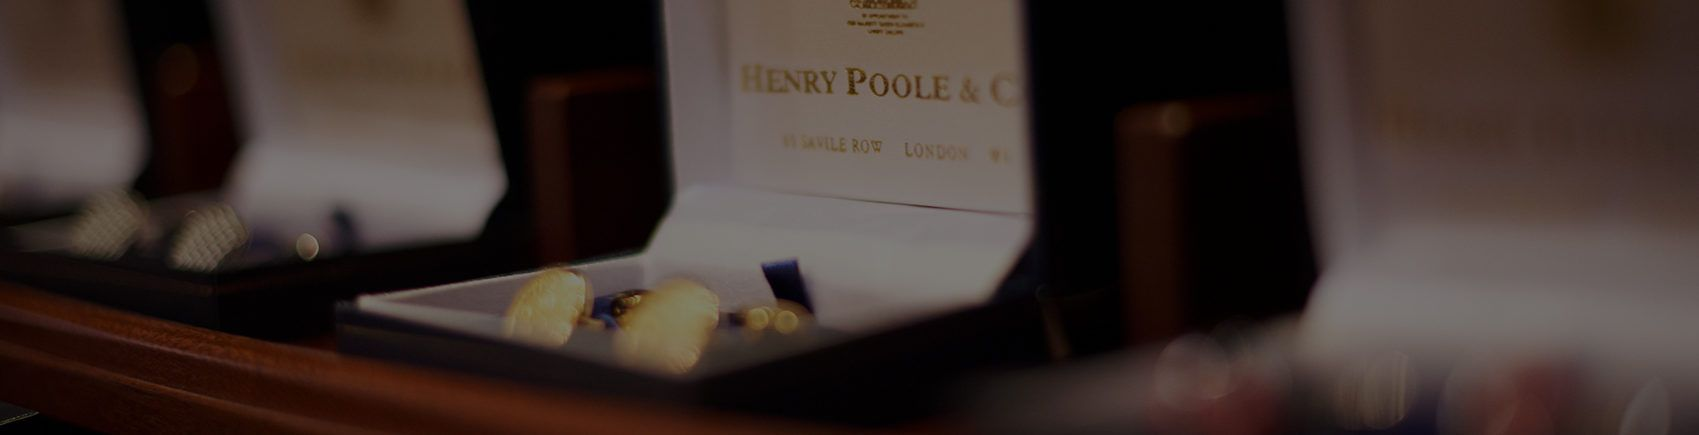 Henry Poole Savile Row Tailors Shop Cufflinks 2